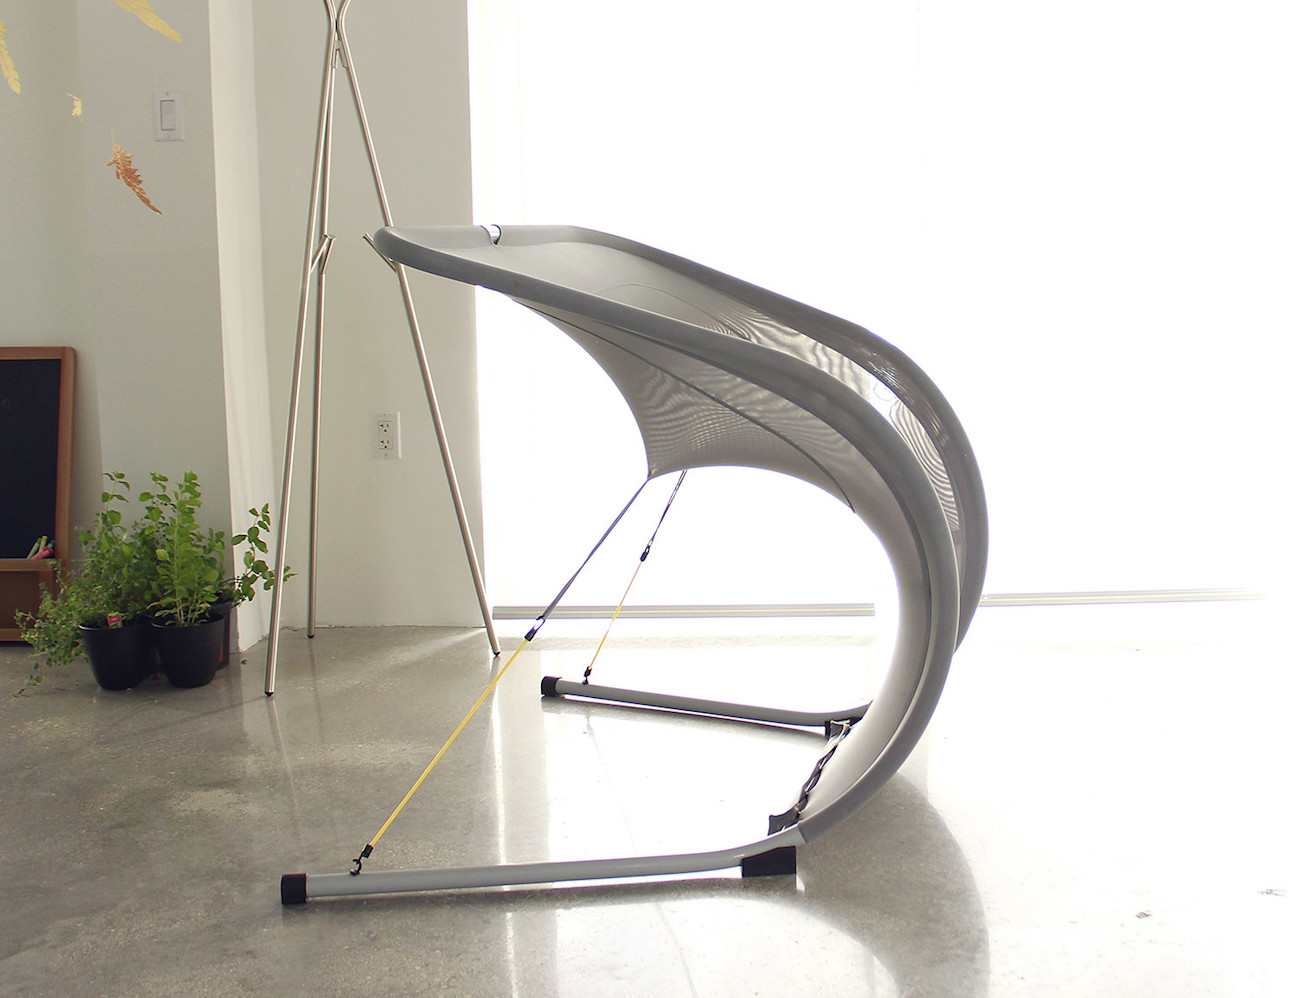 SUZAK – The Multi-Position Chair